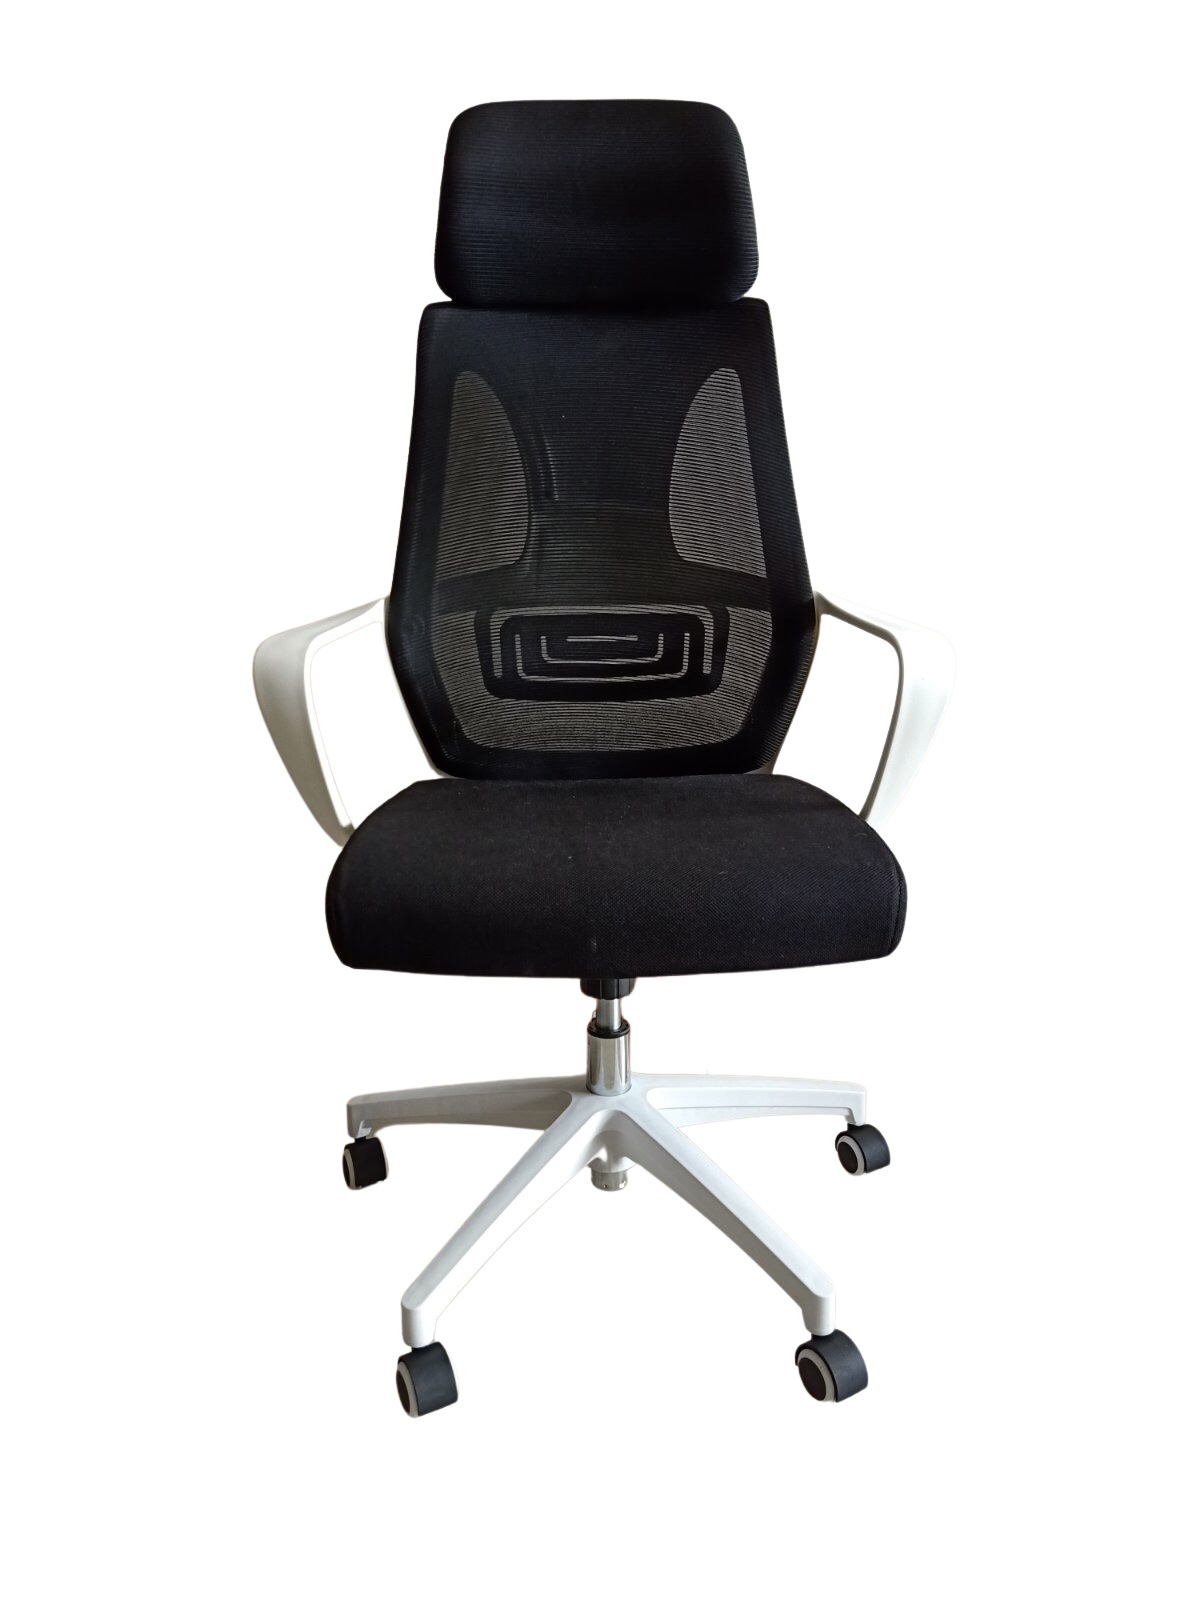 Get Stylish Executive Chairs Online